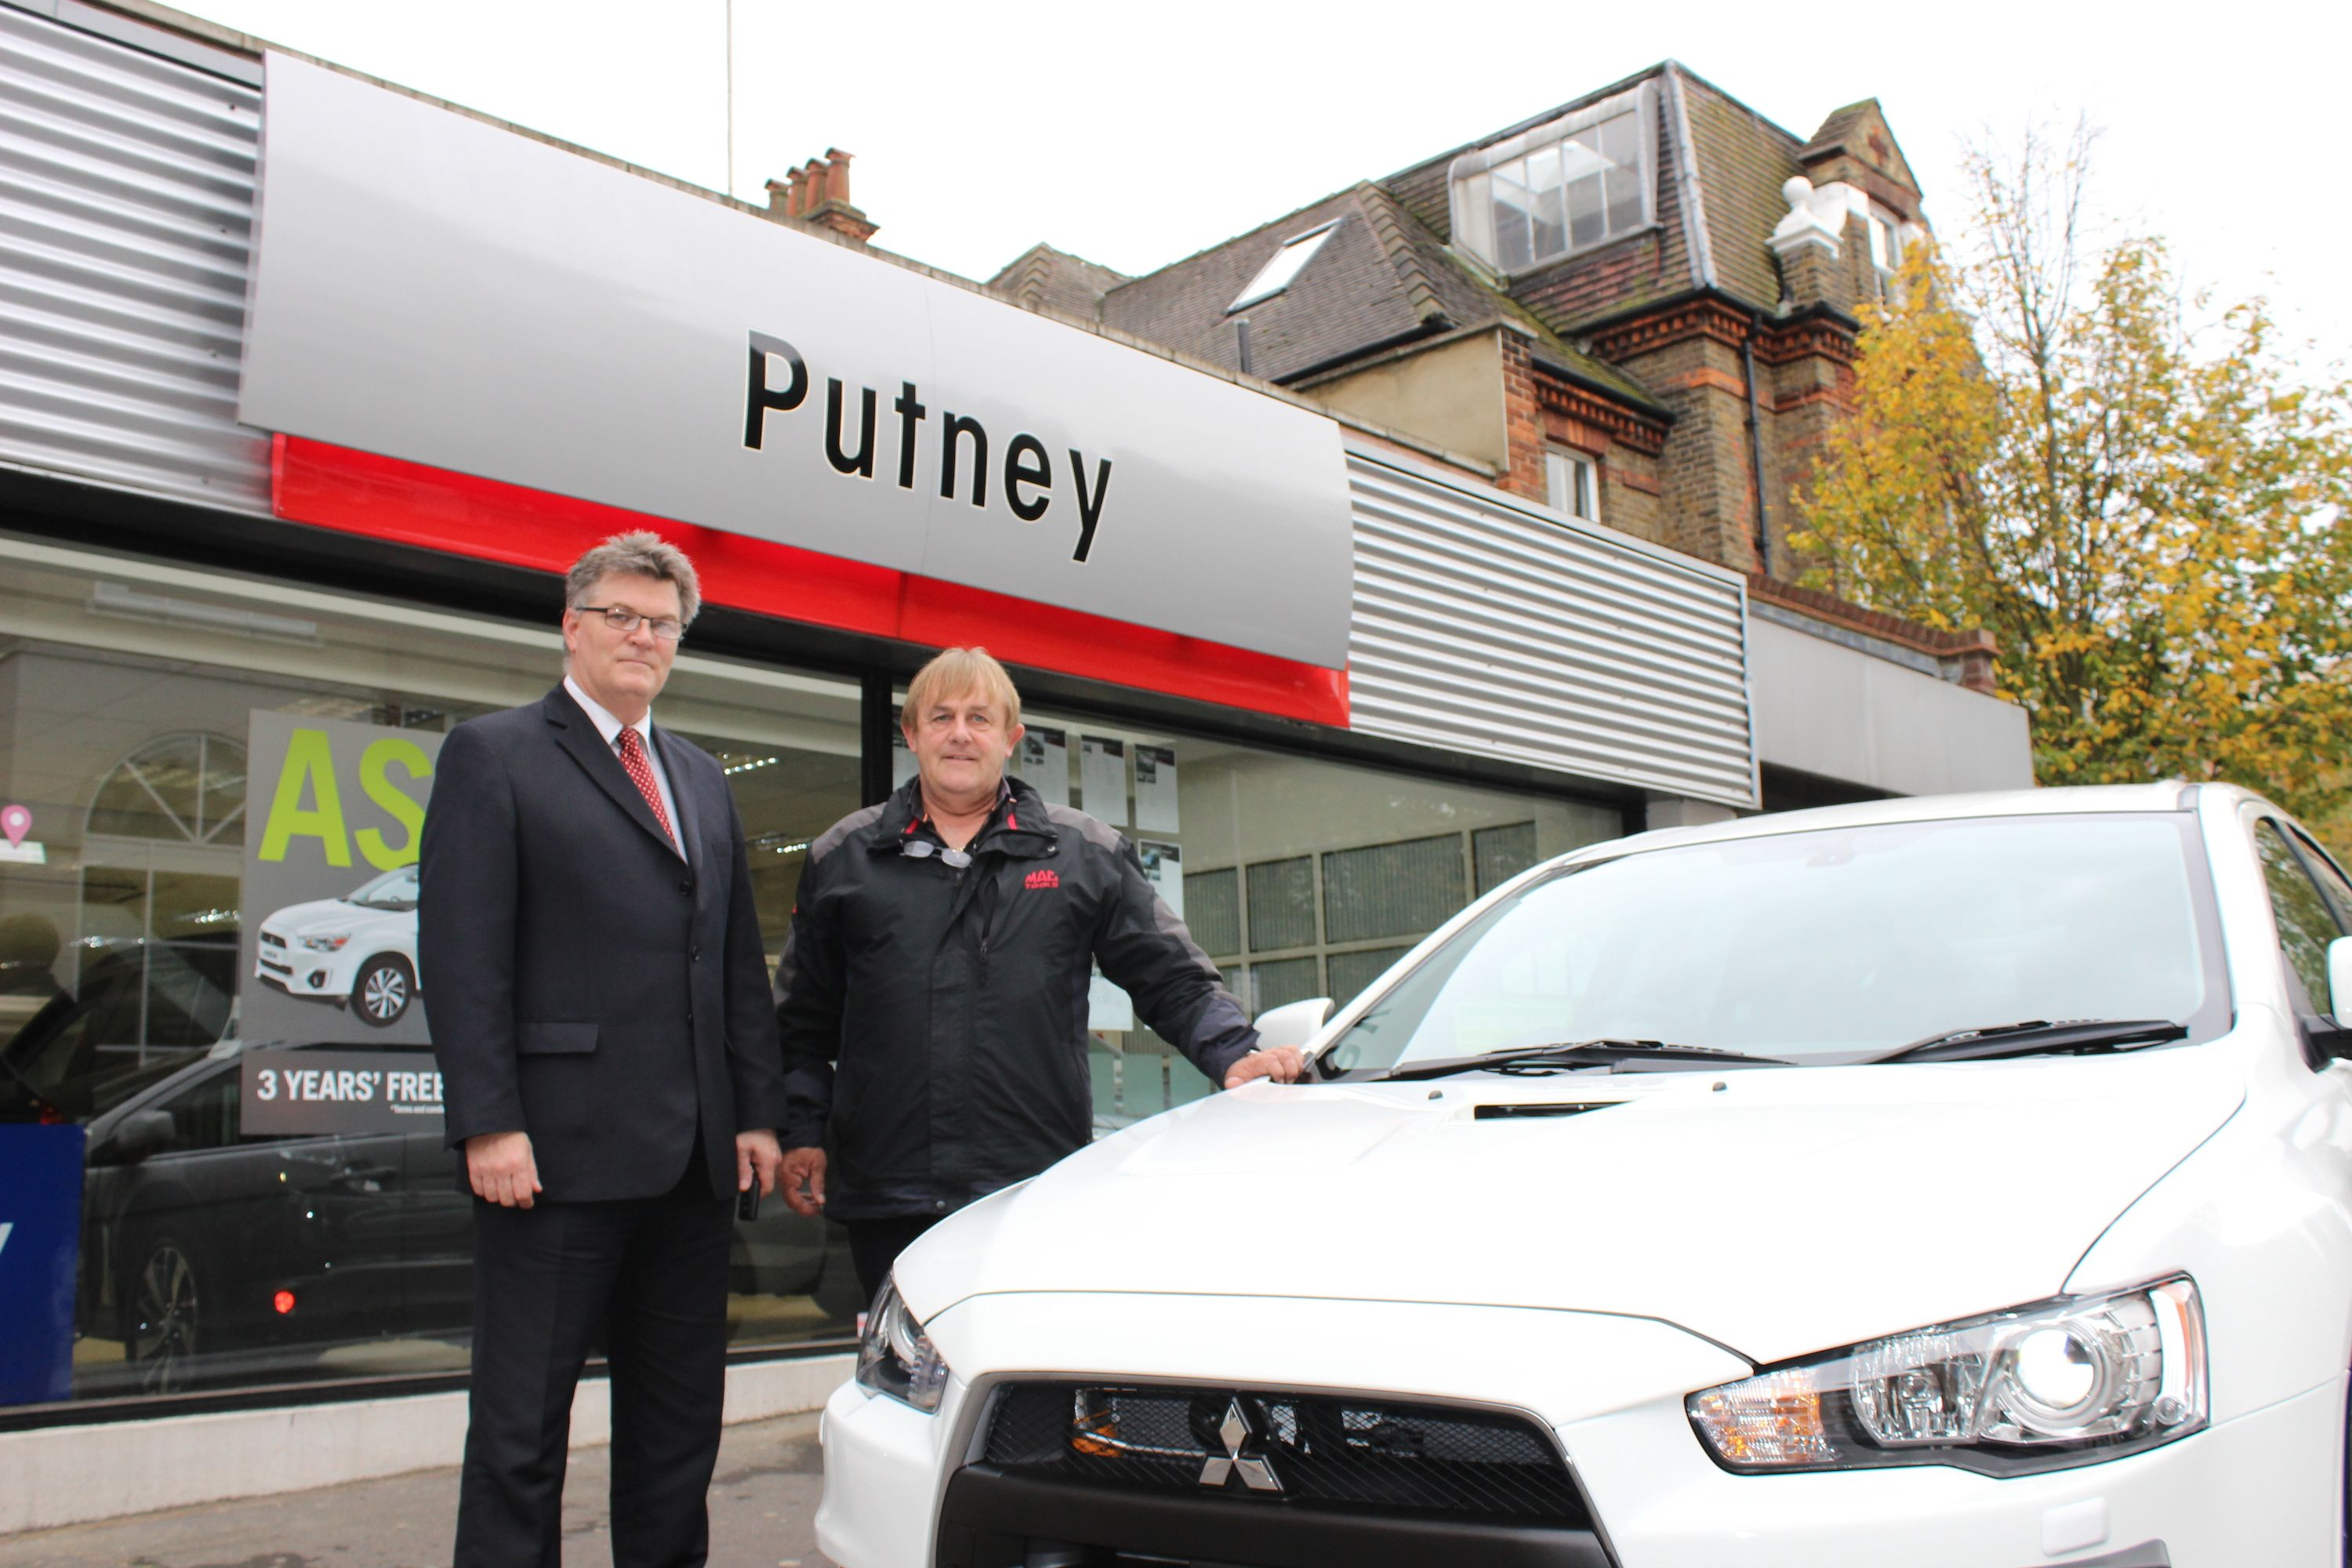 BIRTHDAY TREAT FOR MOTORING FAN AS HE PICKS UP ONE OF ONLY 40 CARS OF ITS KIND IN THE UK FROM PUTNEY DEALER